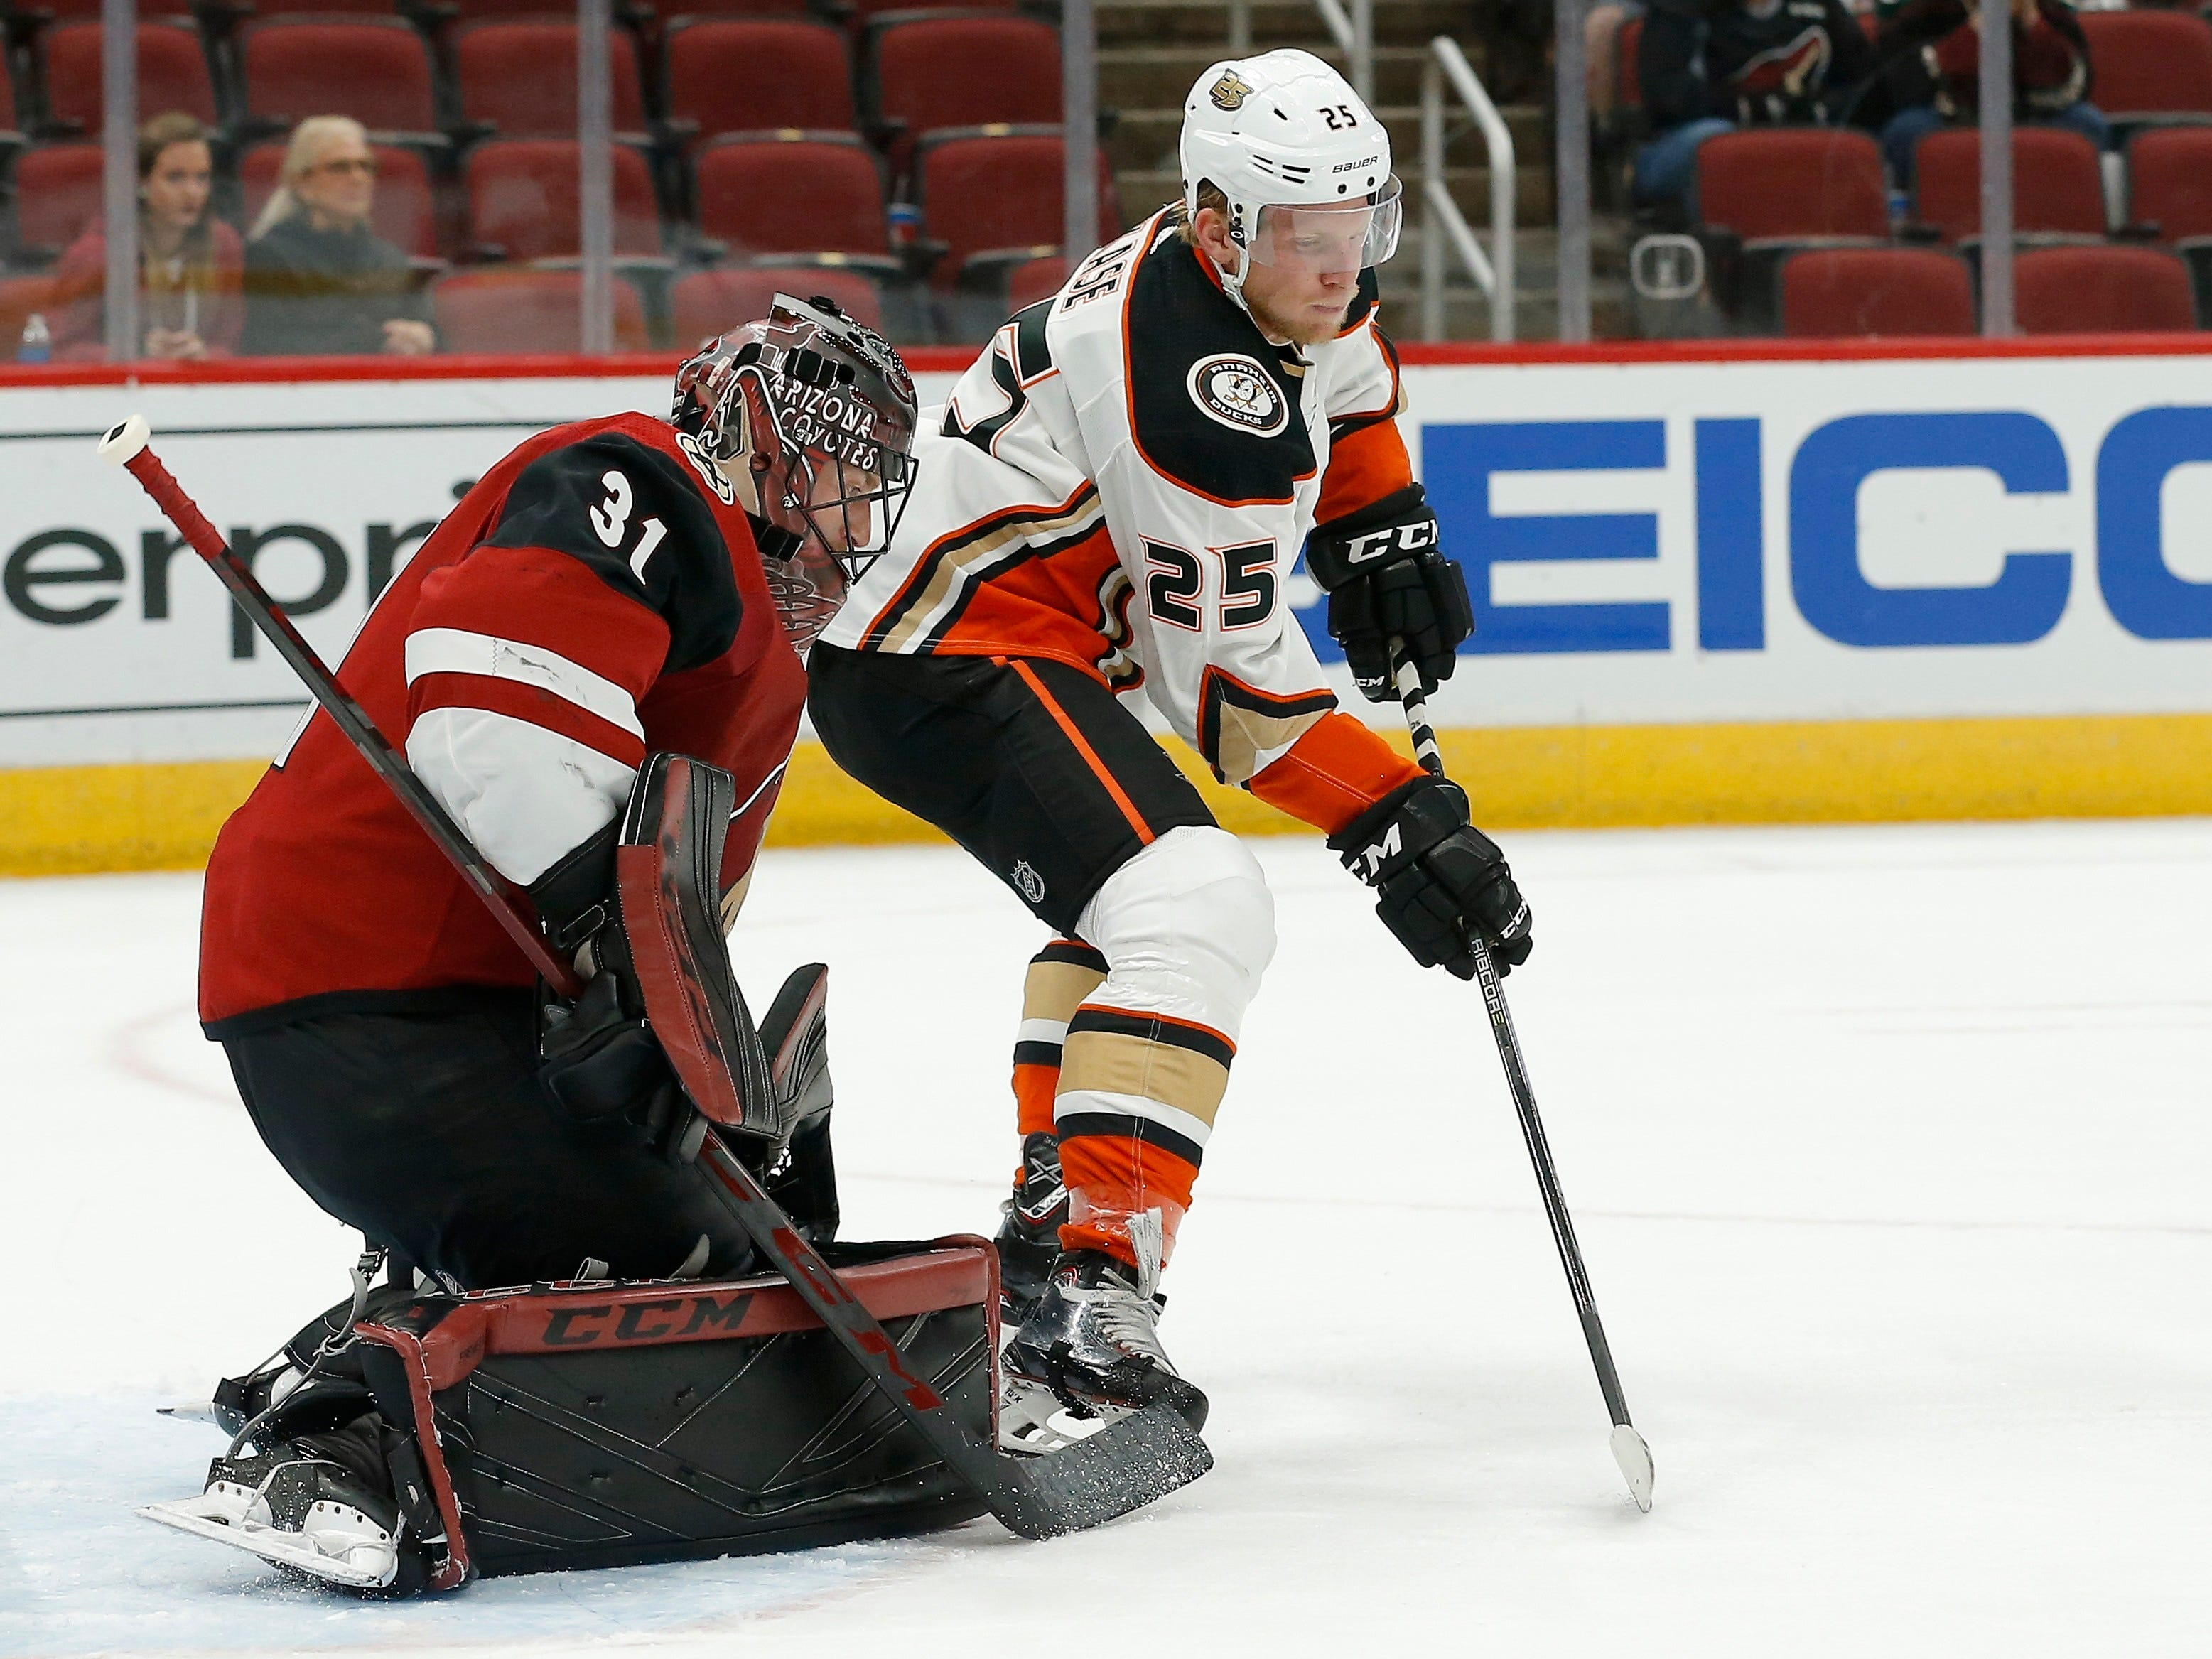 Anaheim Ducks right wing Ondrej Kase (25) waits for the puck in front of Arizona Coyotes goalie Adin Hill (31) during the third period of an NHL preseason hockey game Saturday, Sept. 22, 2018, in Glendale, Ariz. The Coyotes defeated the Ducks 6-1.